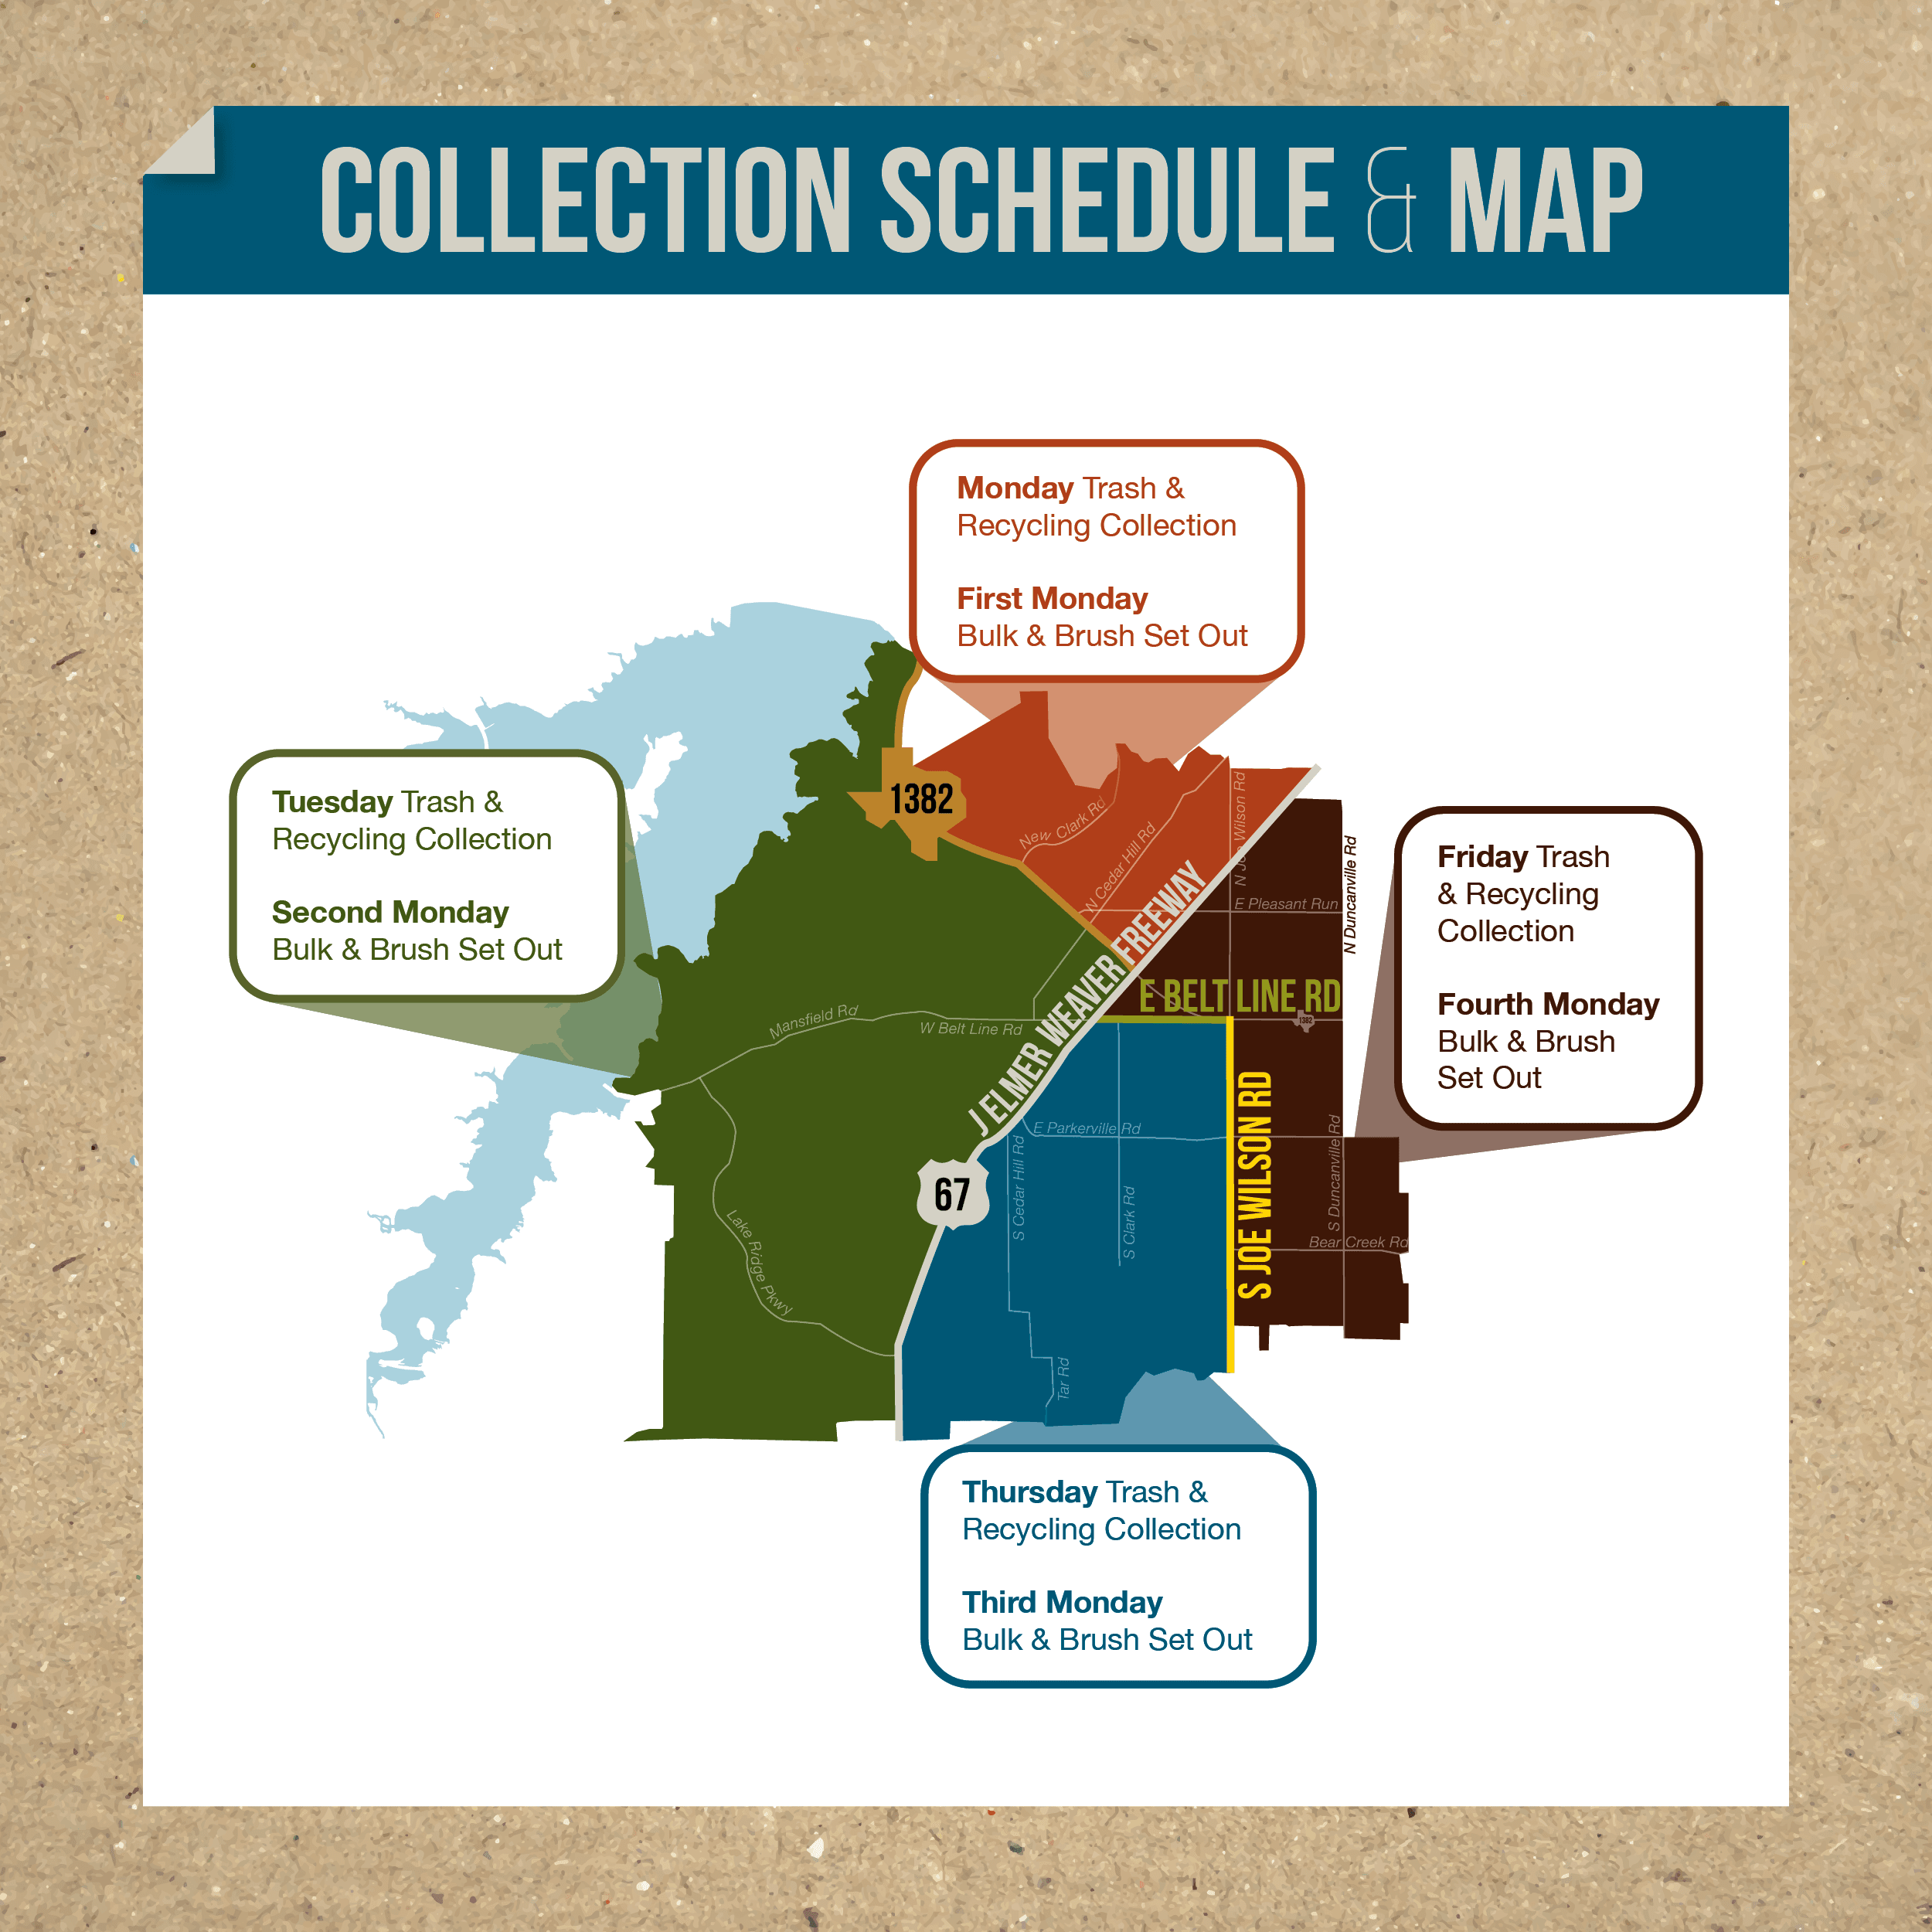 Collection Schedule Map